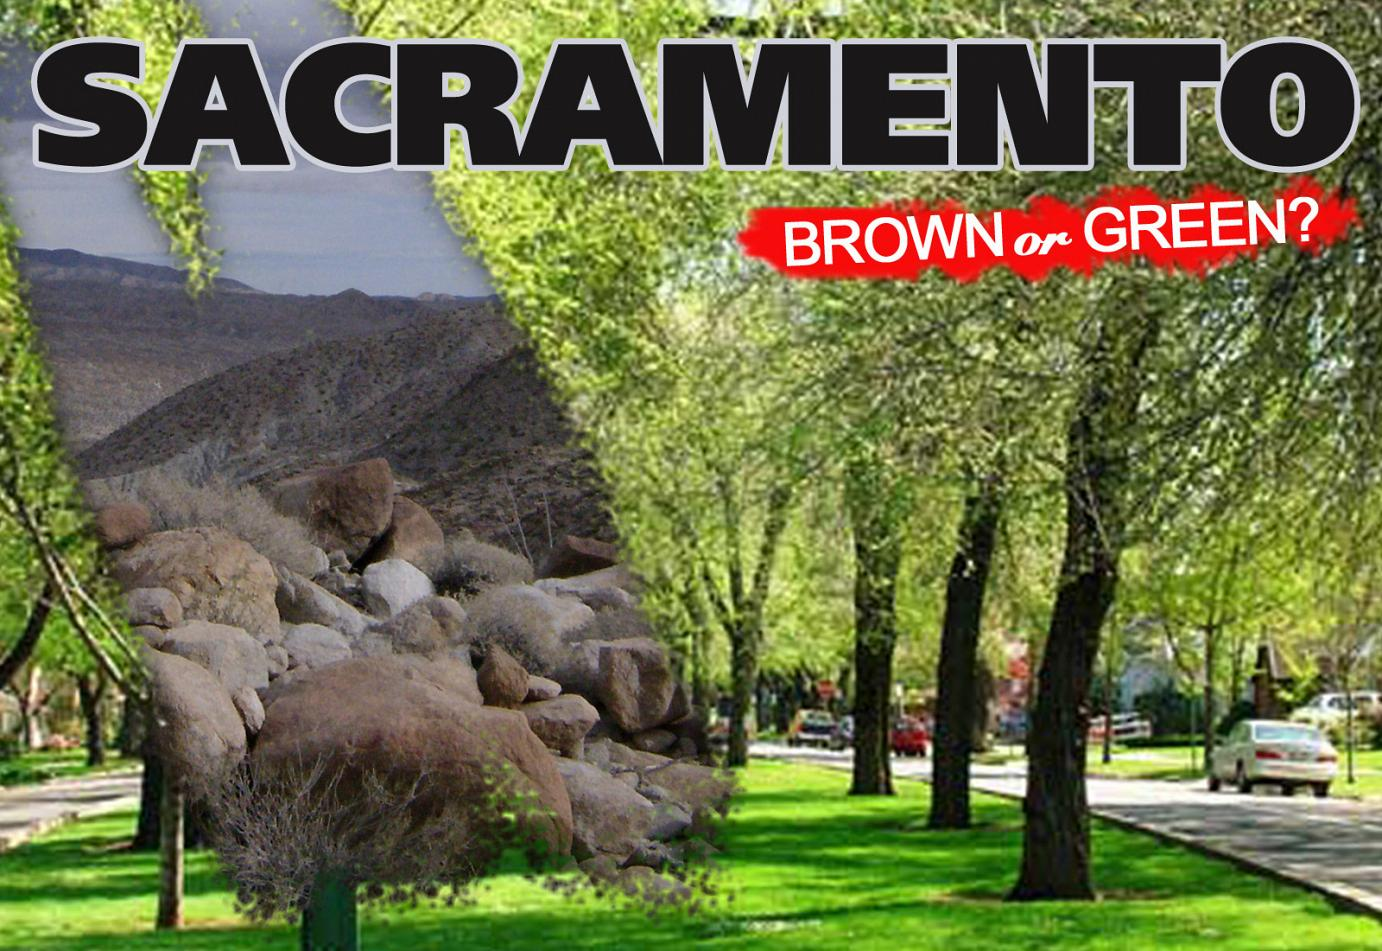 syntheticgrass Sacramento: Back to Desert, or Lifting a Ban on Artificial Grass?